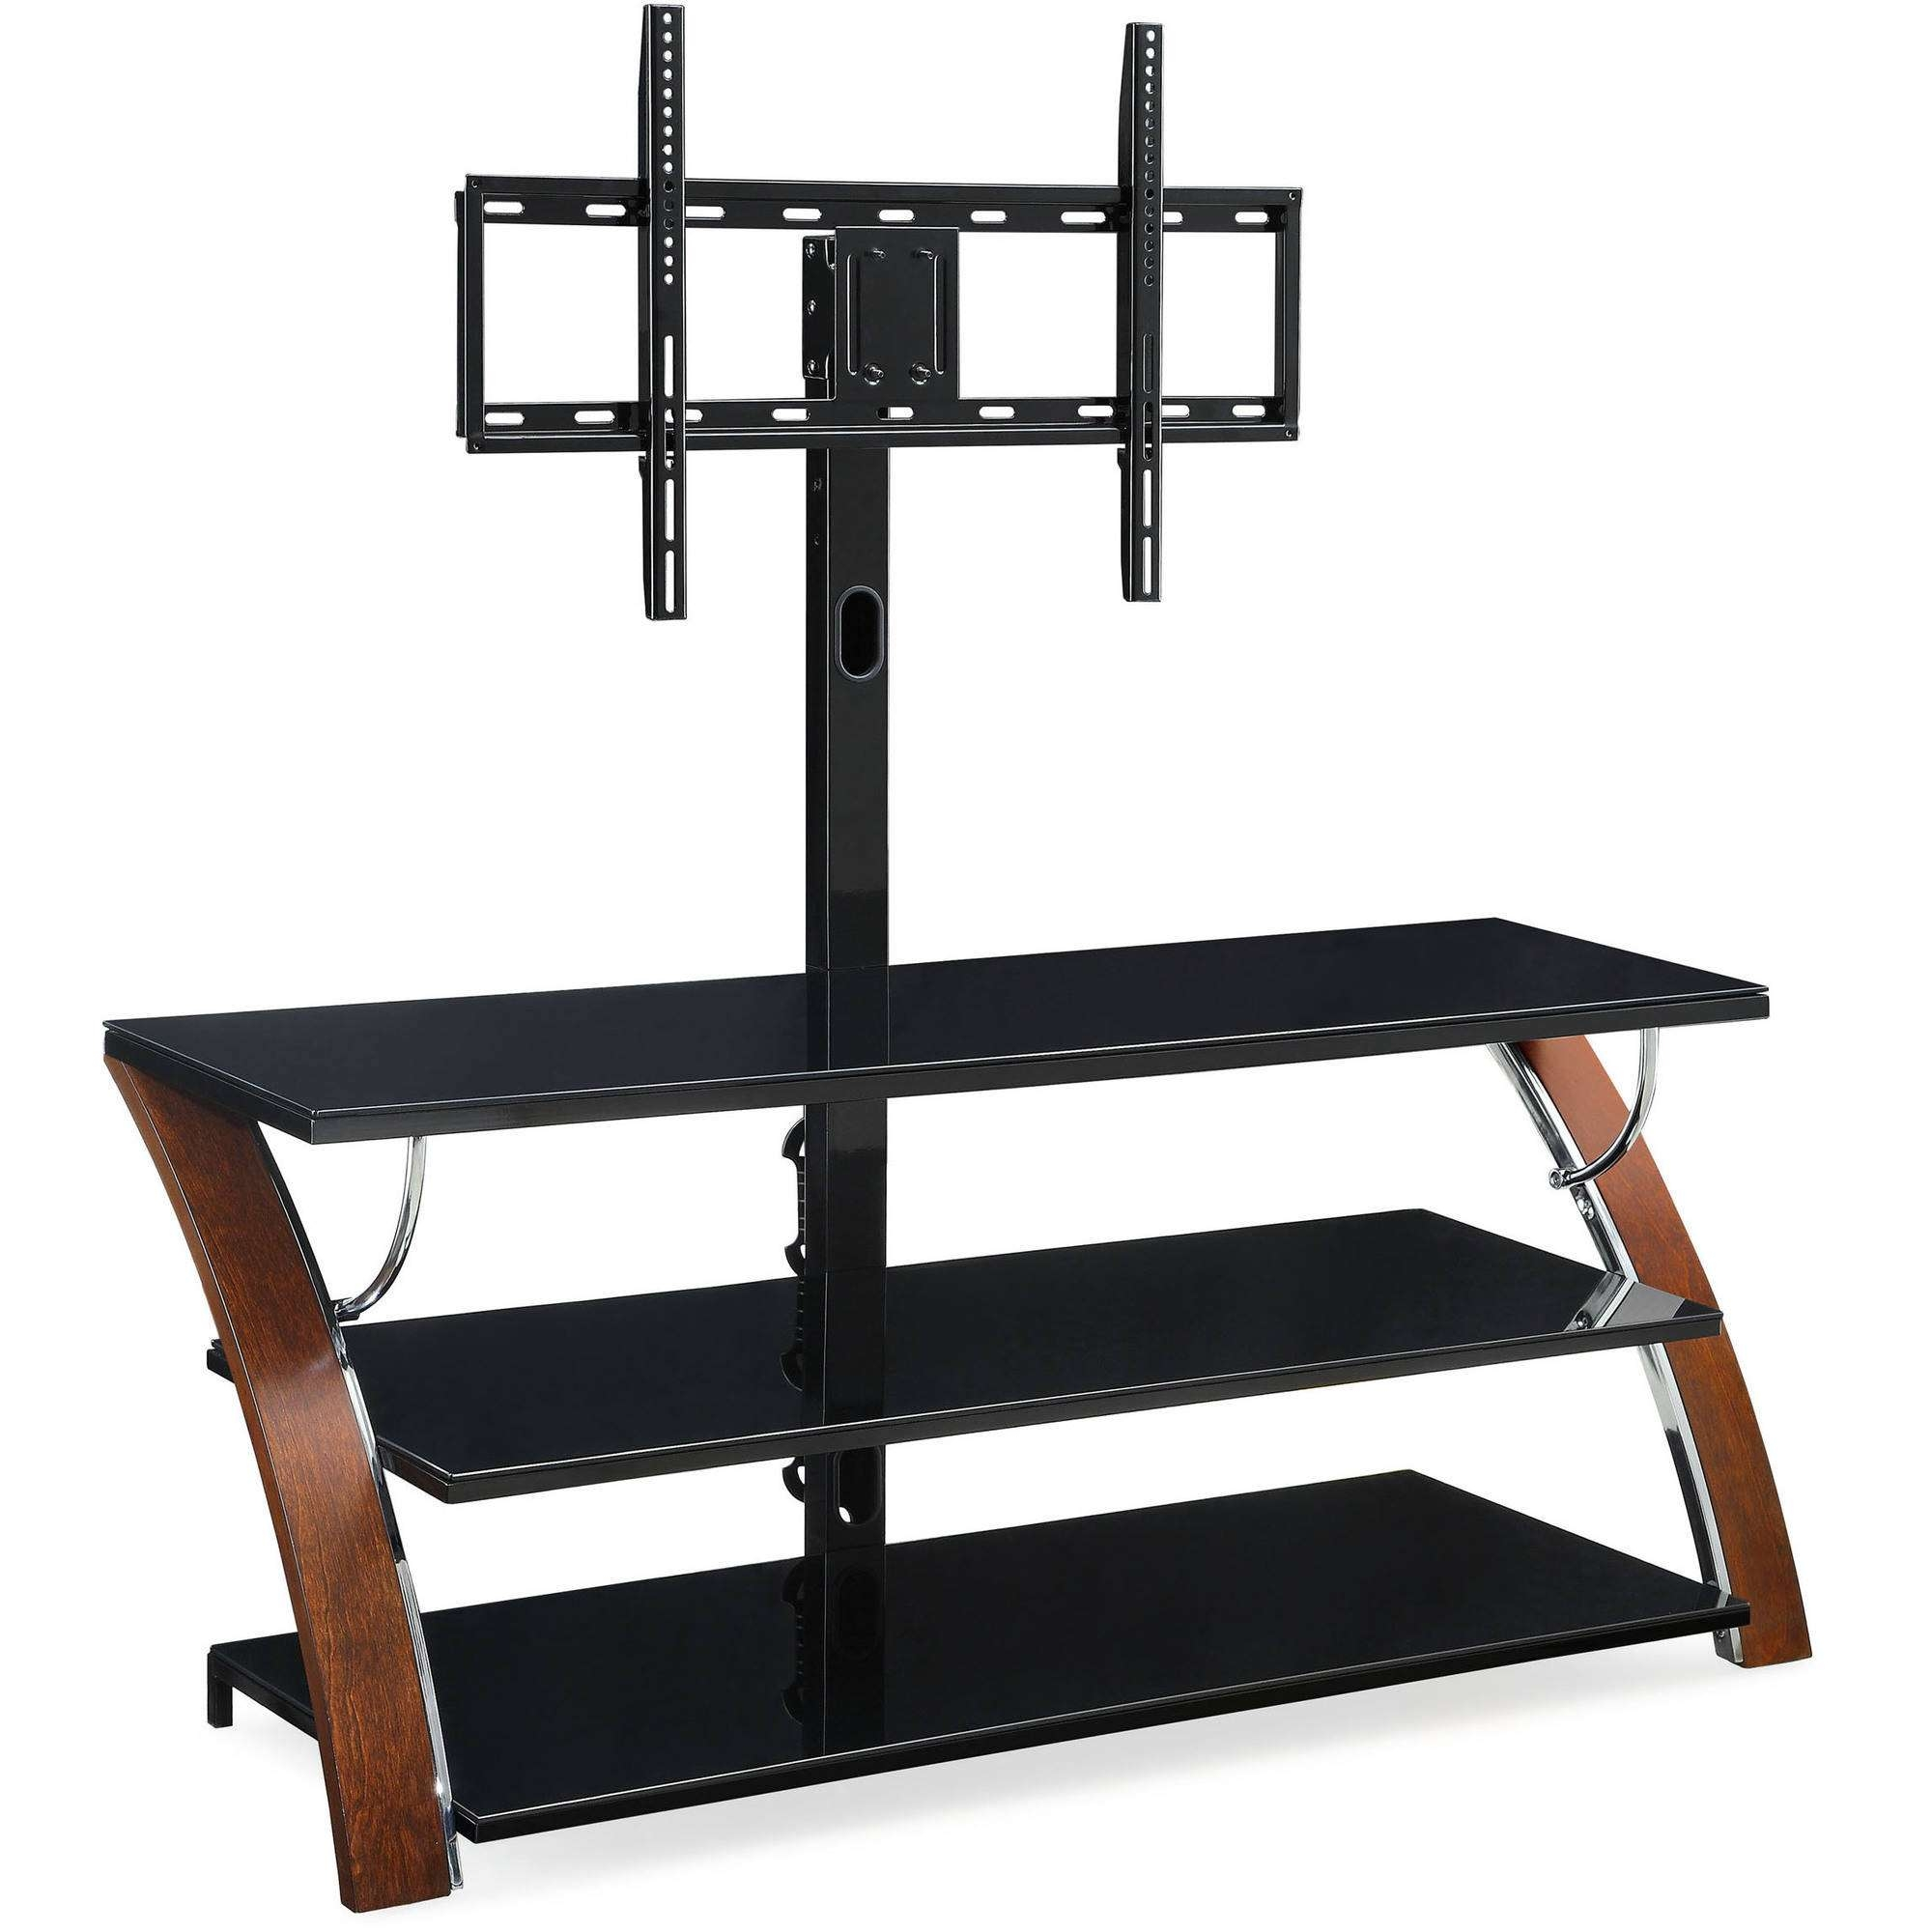 Trend Tv Stand With Swivel Mount For Flat Panel Tvs 97 On Home In Wood Tv Stands With Swivel Mount (View 15 of 15)